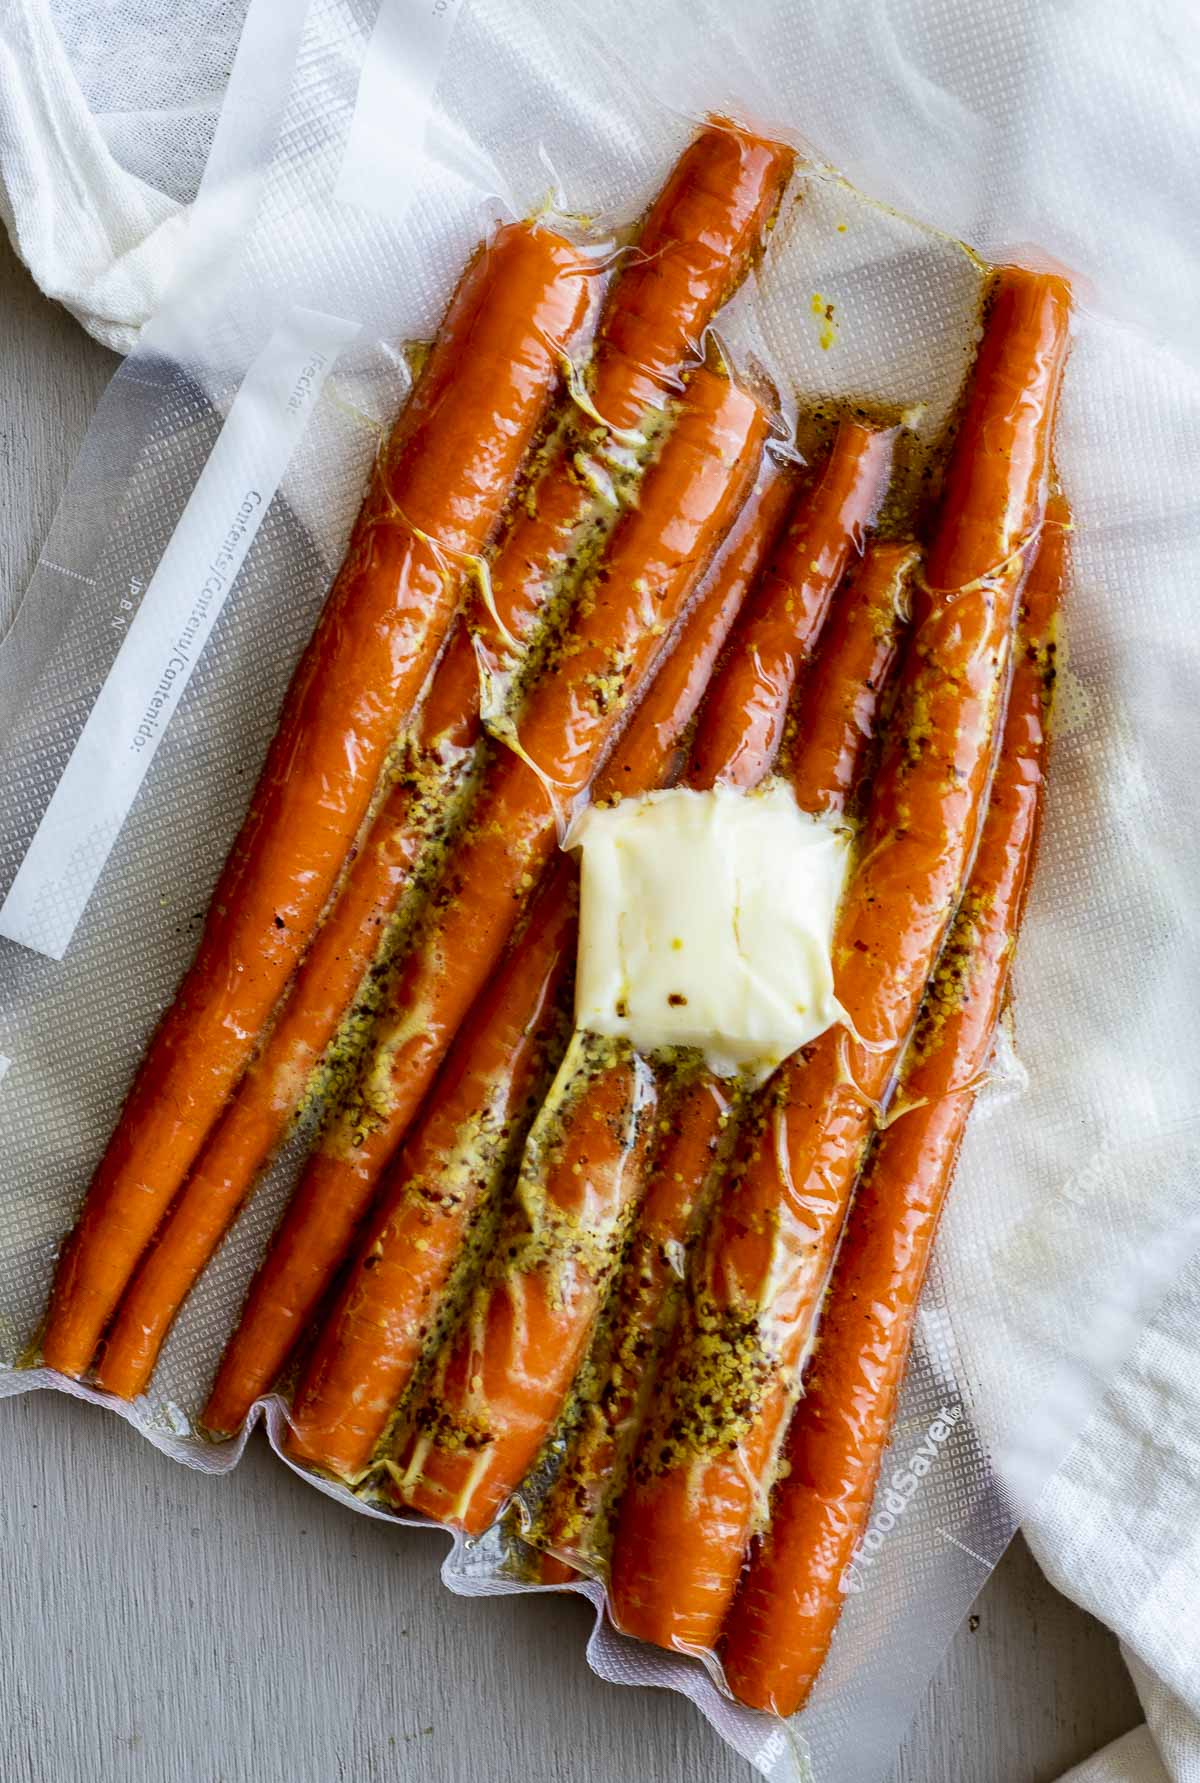 Raw whole carrots vacuum sealed with butter and other ingredients.